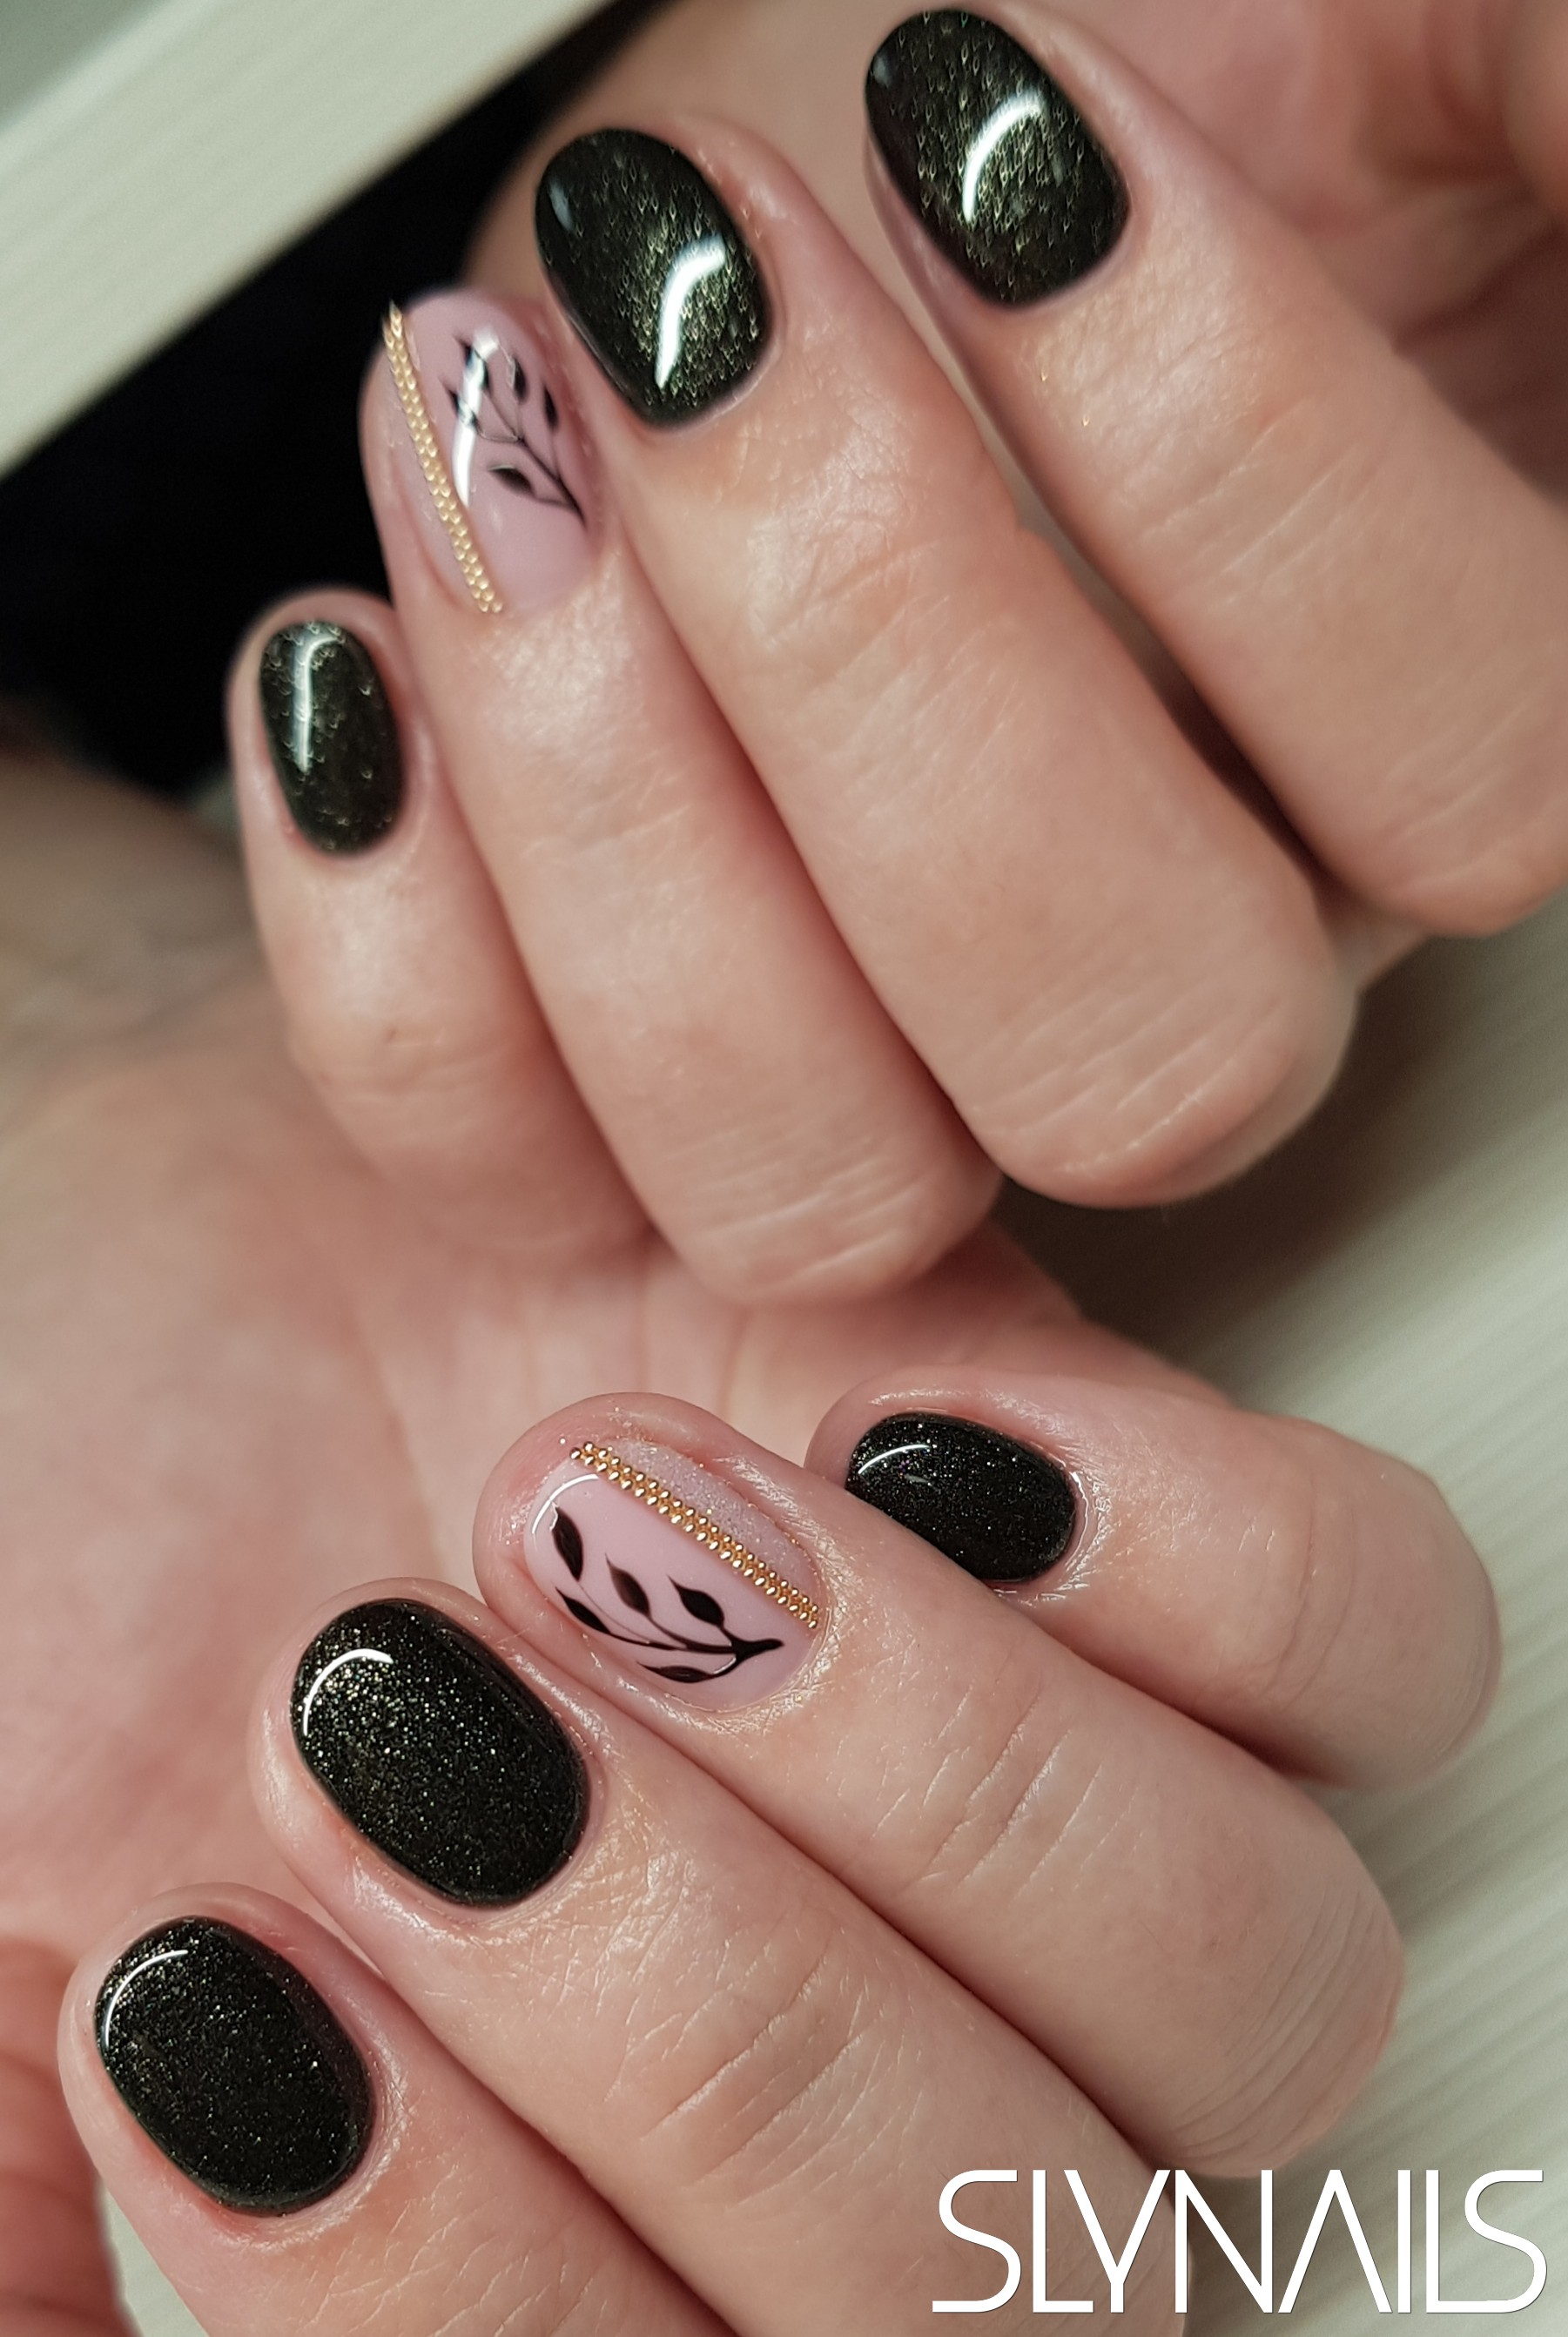 Gel-lac (gel polish), Black, Nude, Rounded, Art gel decorations, One color, Metal Decoration